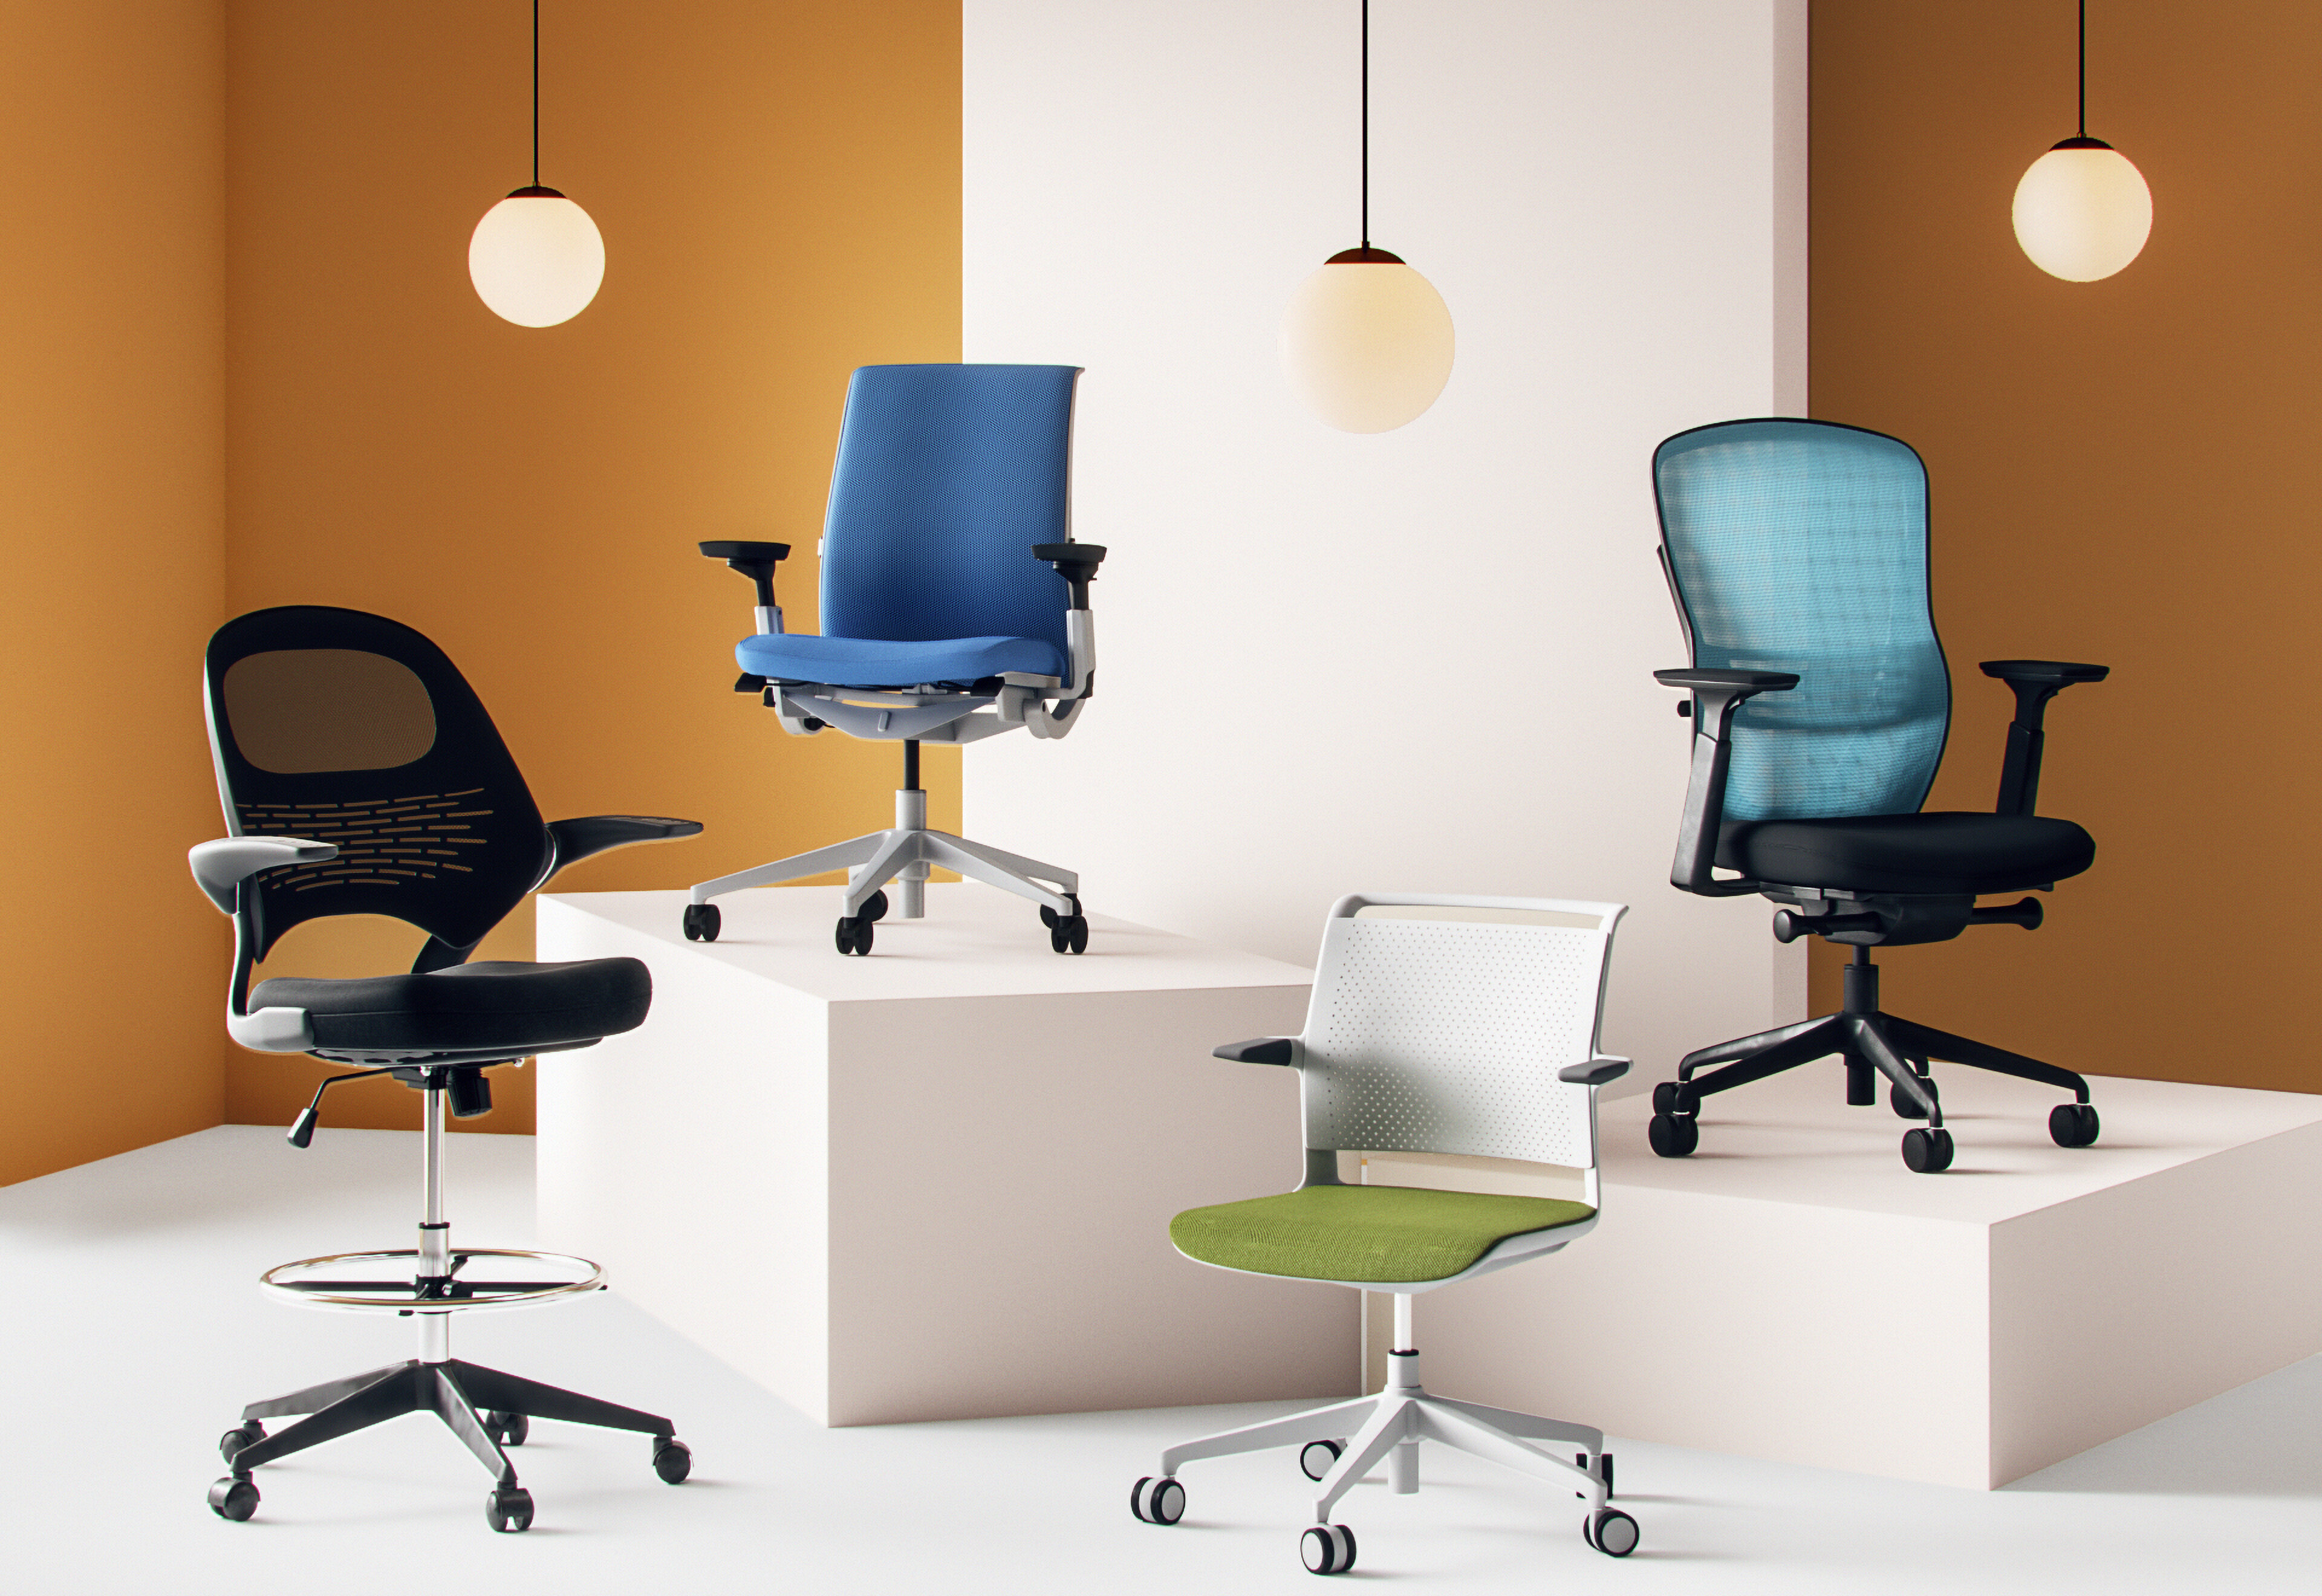 Wayfair Professional's Office Chair Buying Guide | Wayfair